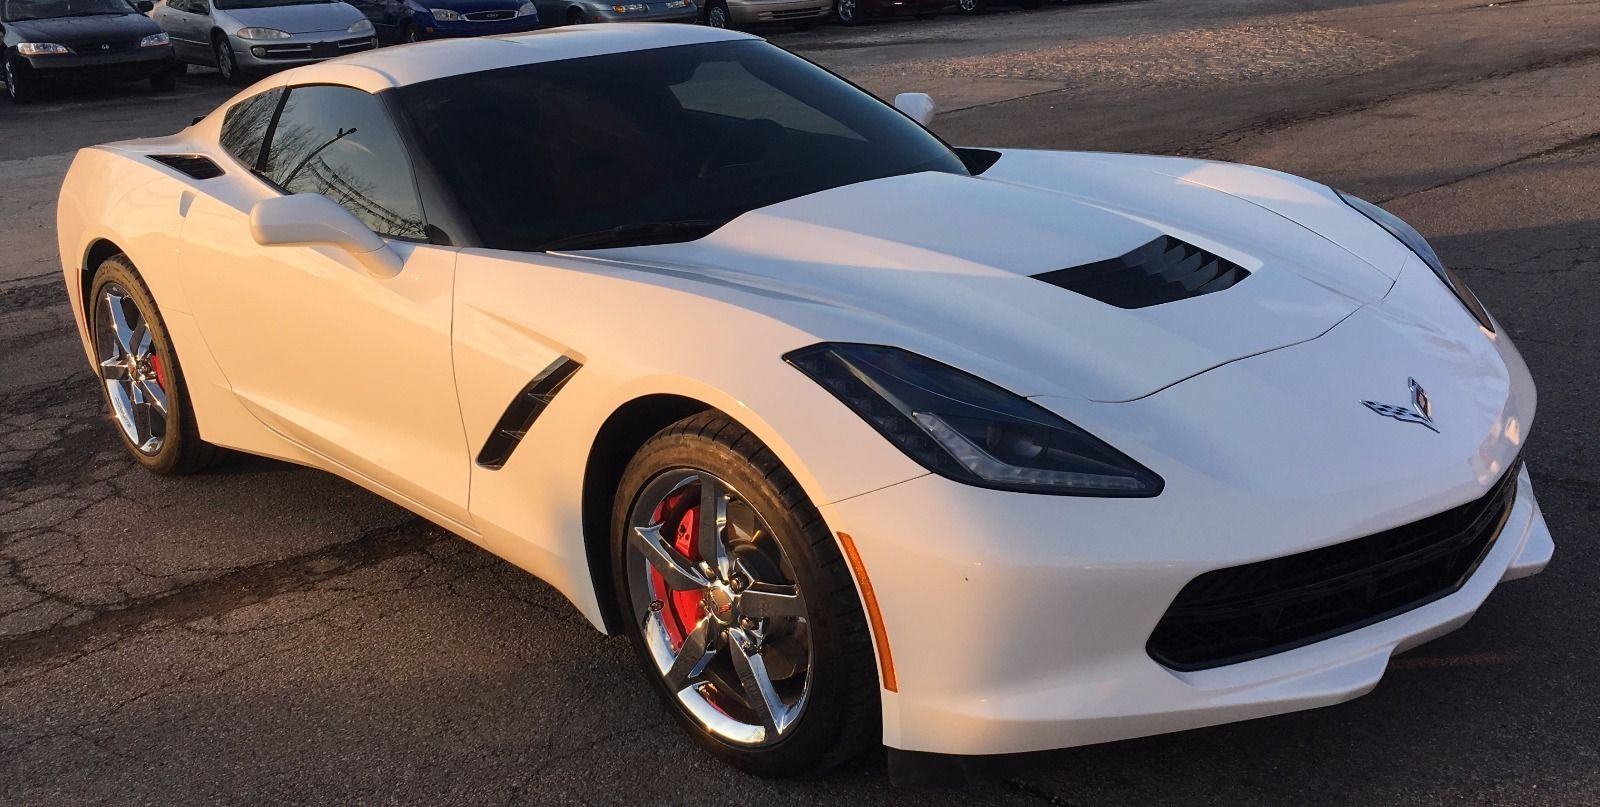 2014 Chevrolet Corvette 1LT Salvage for sale